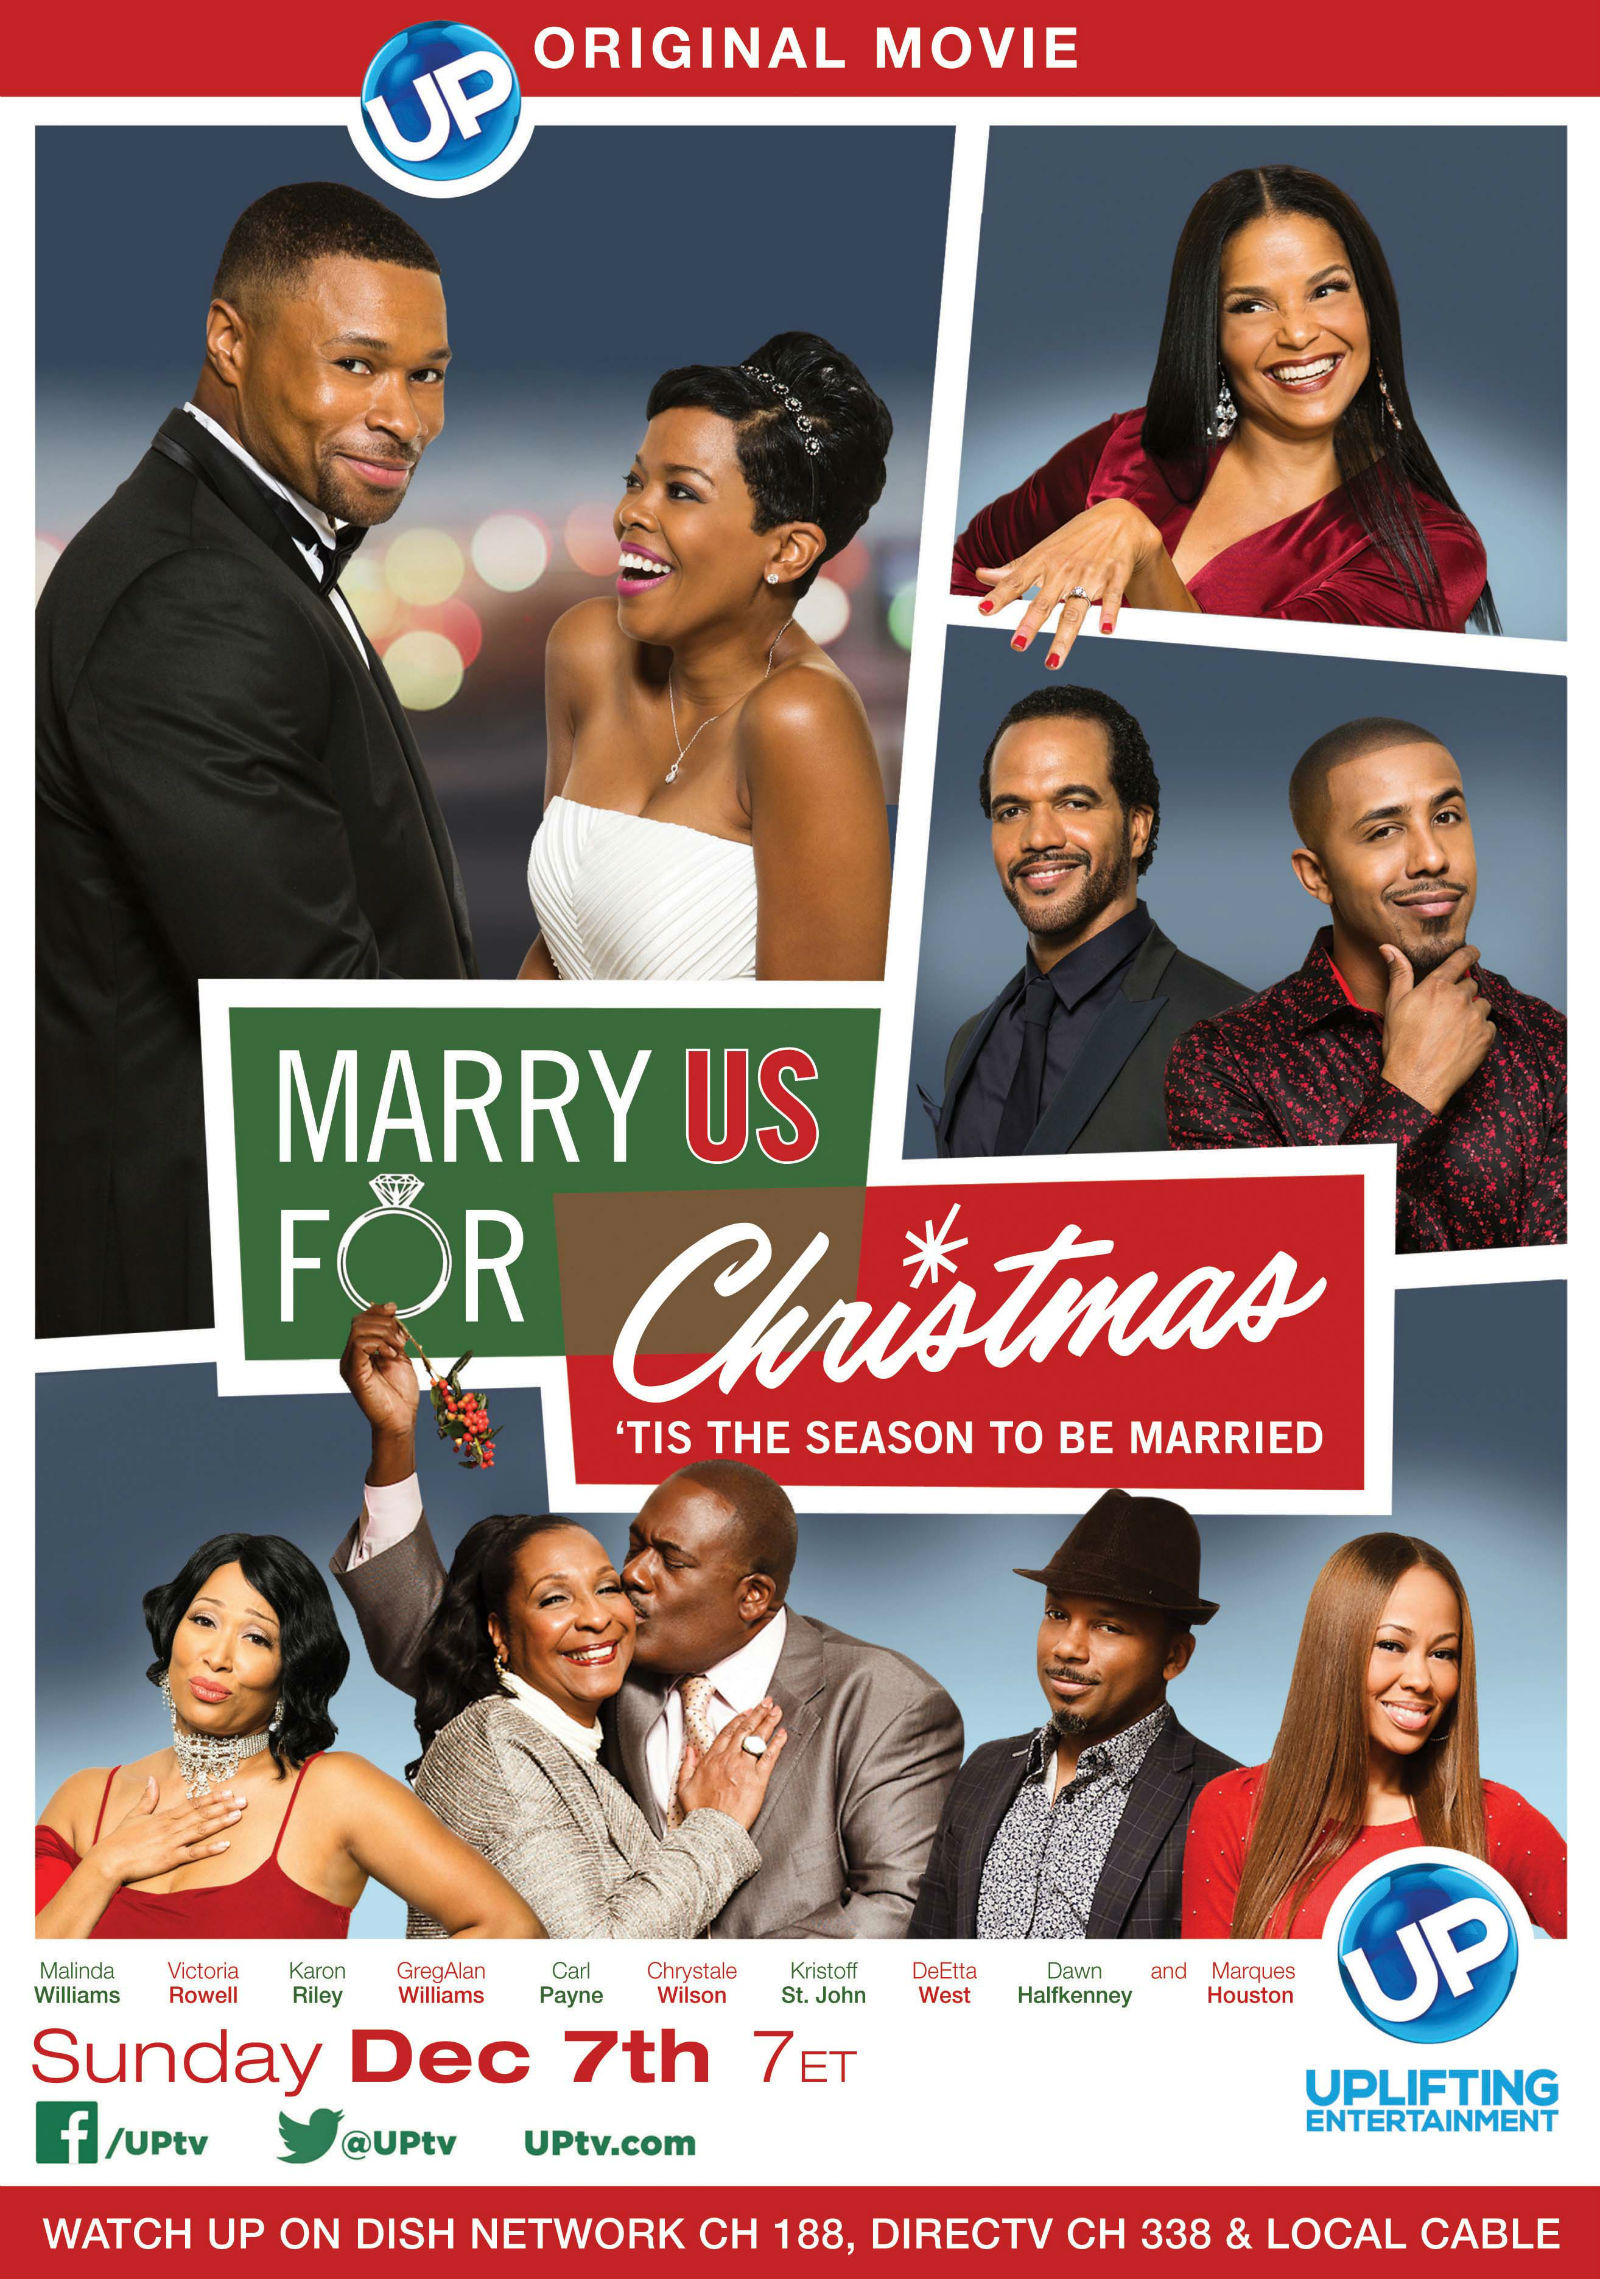 malinda williams and victoria rowell return in up u0026 39 s marry